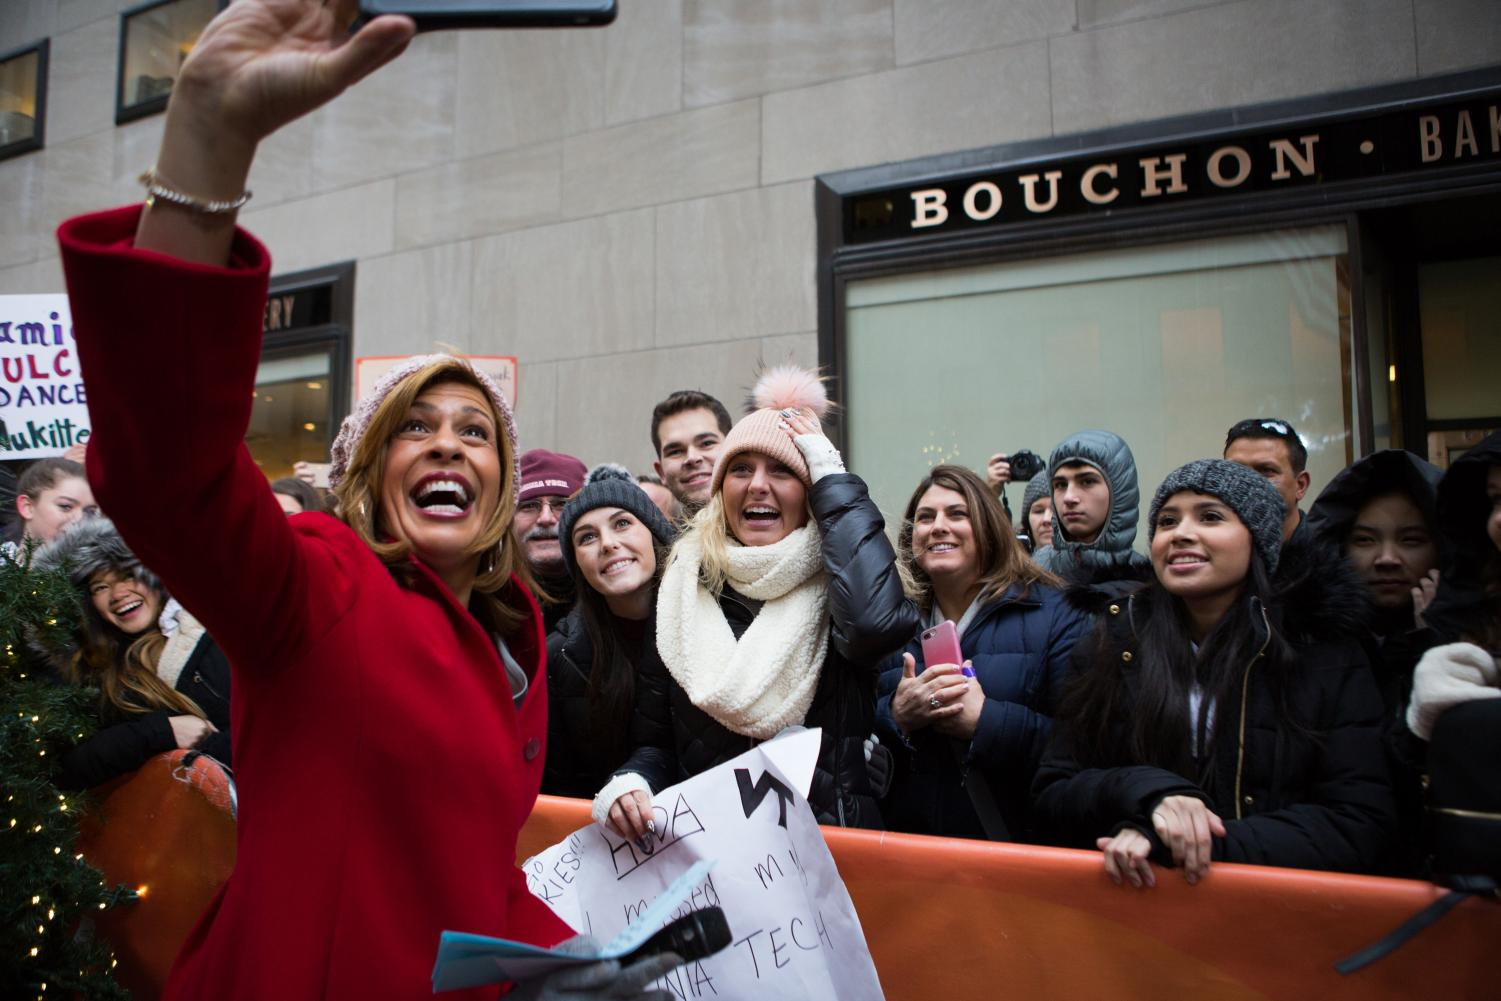 'Dream job': TODAY's Hoda Kotb celebrates first week as anchor